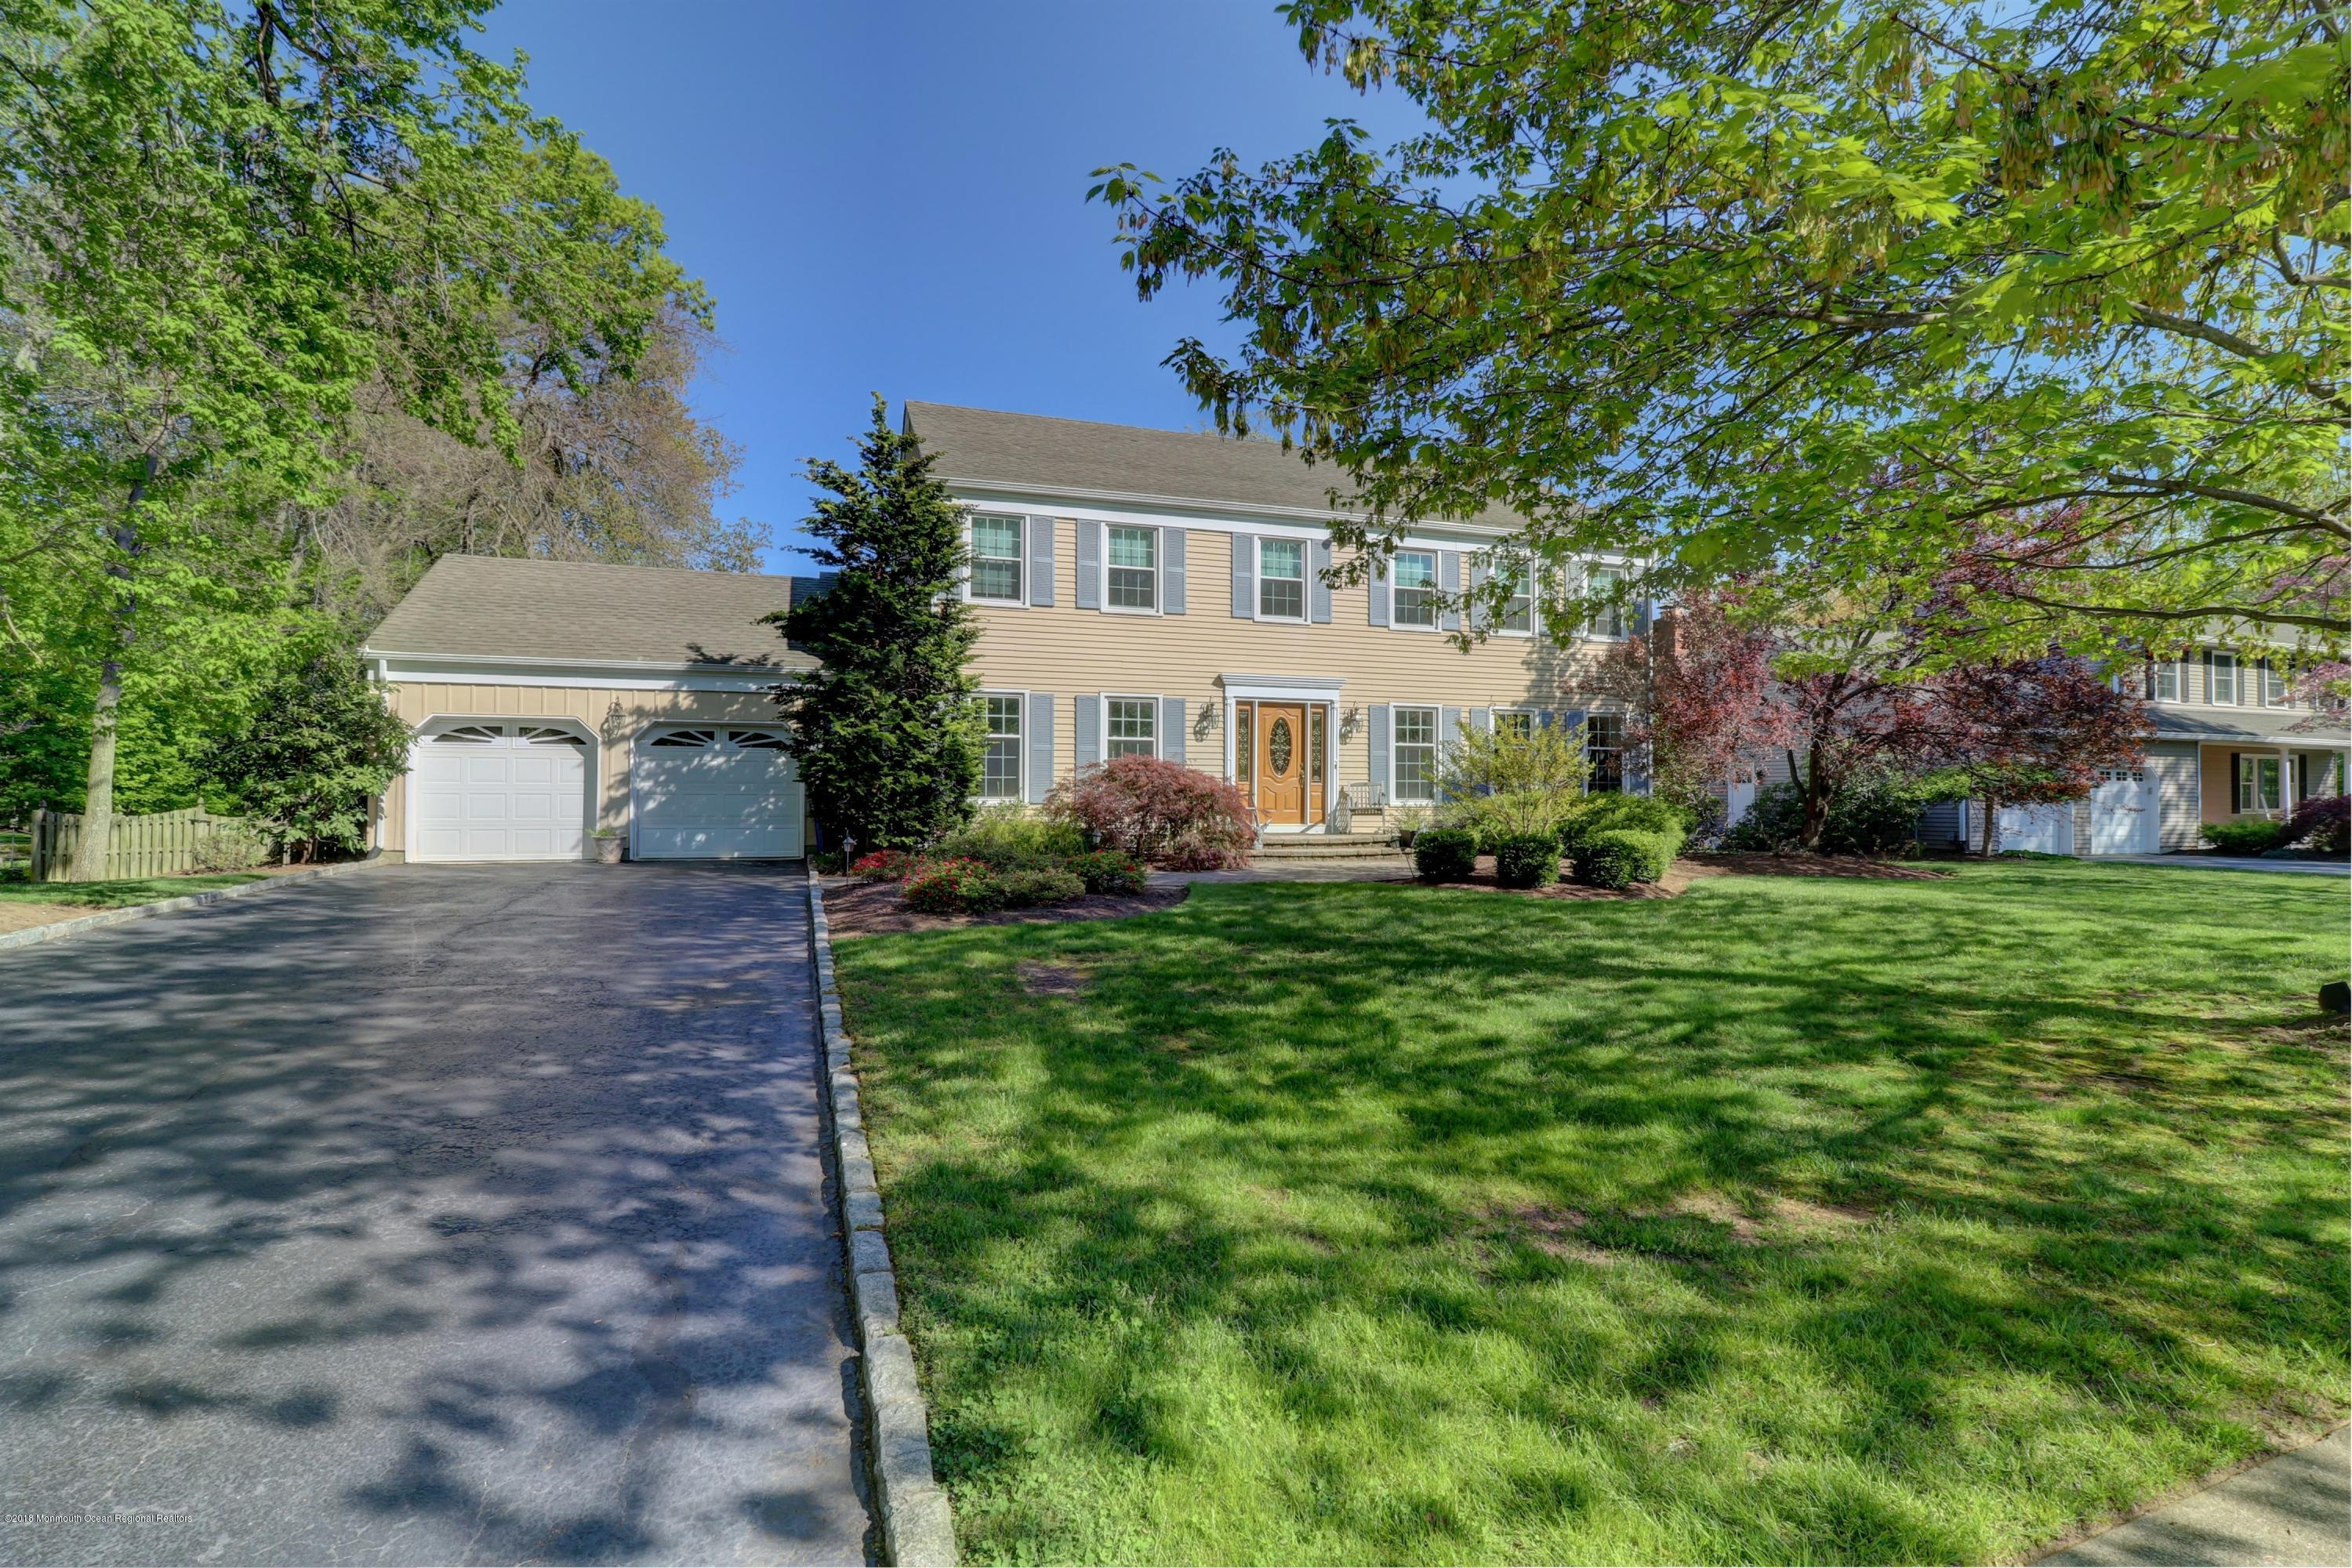 311 BUCHANAN BOULEVARD, RED BANK, NJ 07701